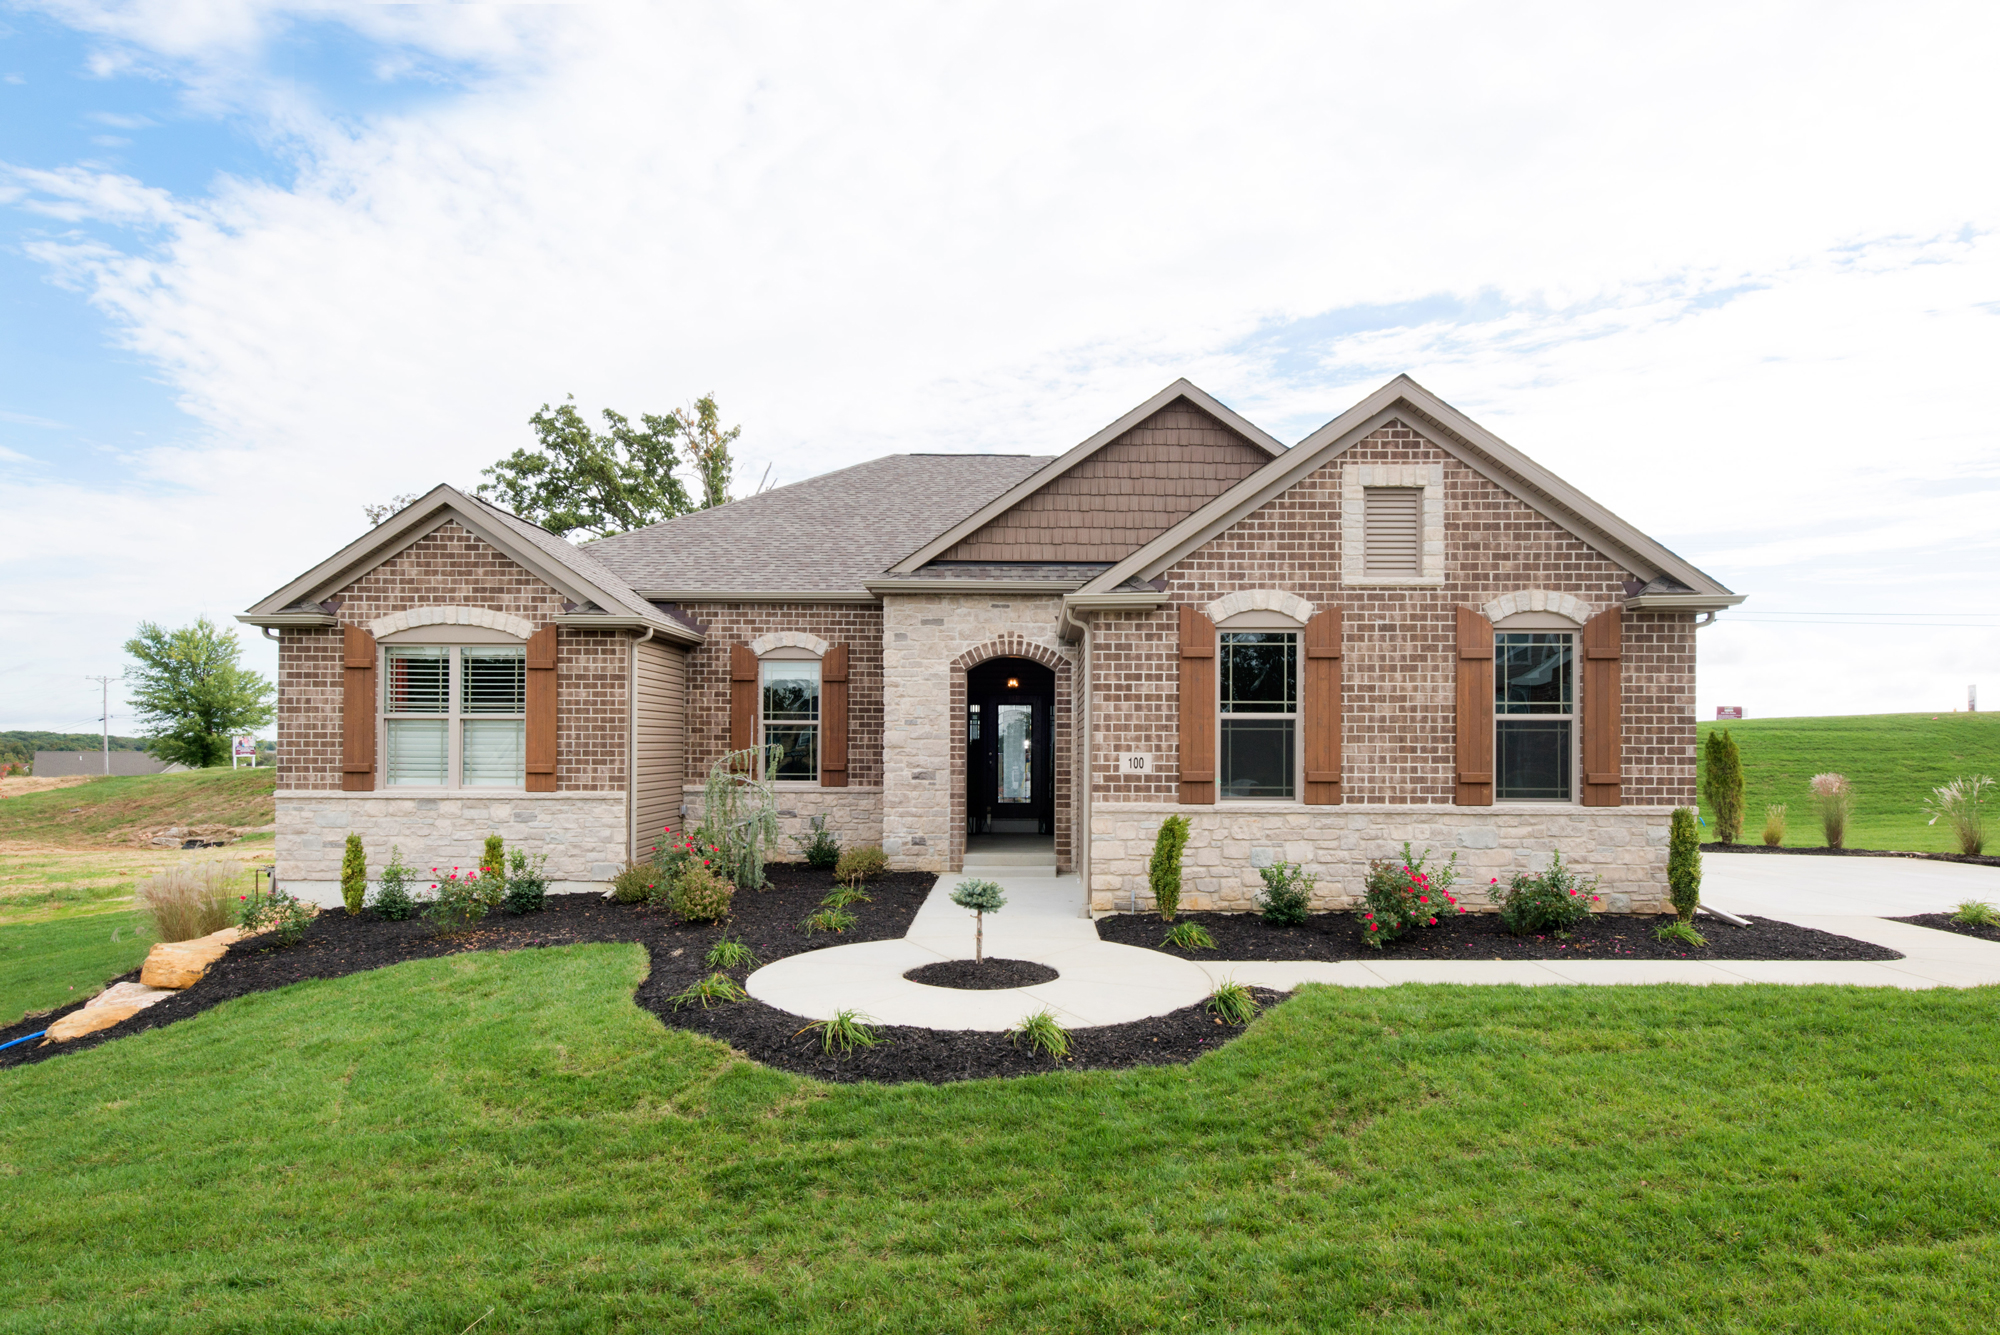 Lombardo homes in lake st louis mo 636 265 2 for Home builders missouri